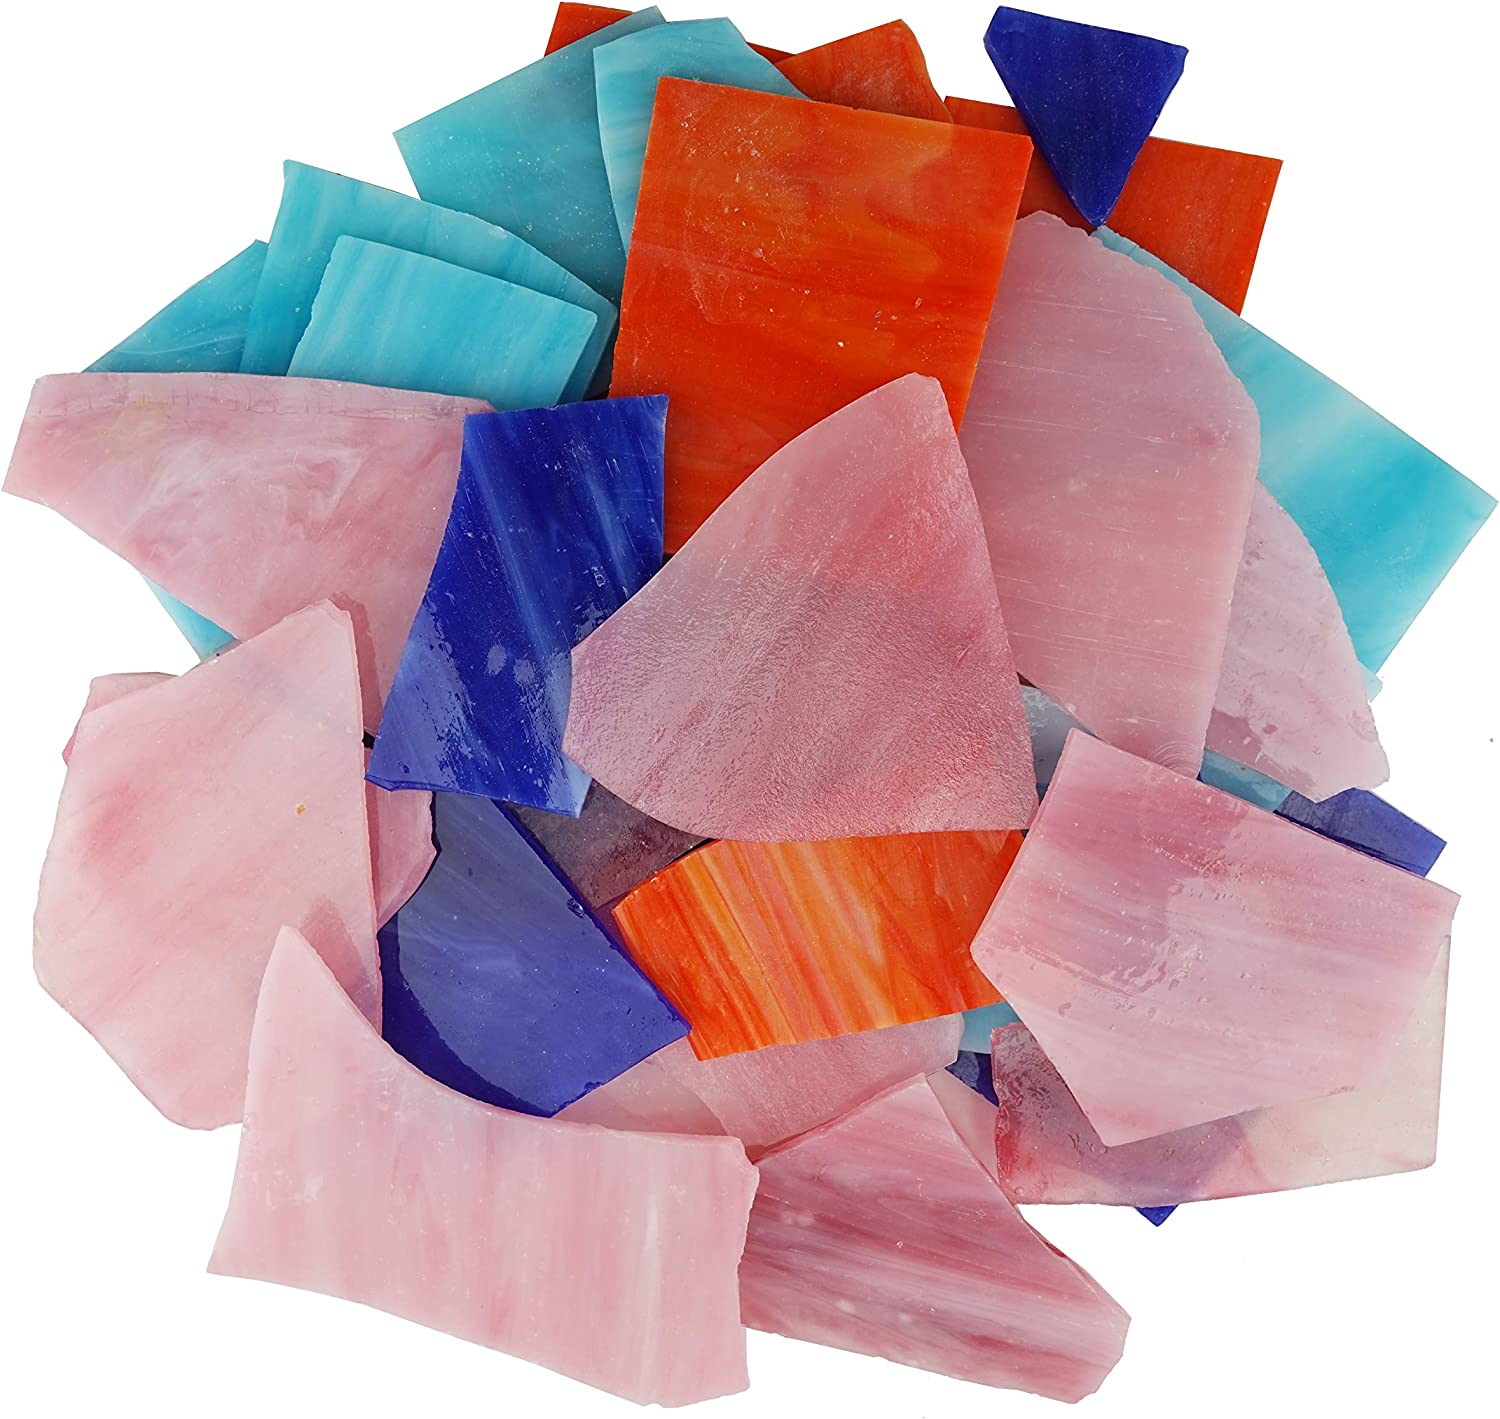 Glass Mosaics Pieces Bright Stained Glass Tiles ,Irregular Shapes and 35 Ounce Value Pack (Pink)